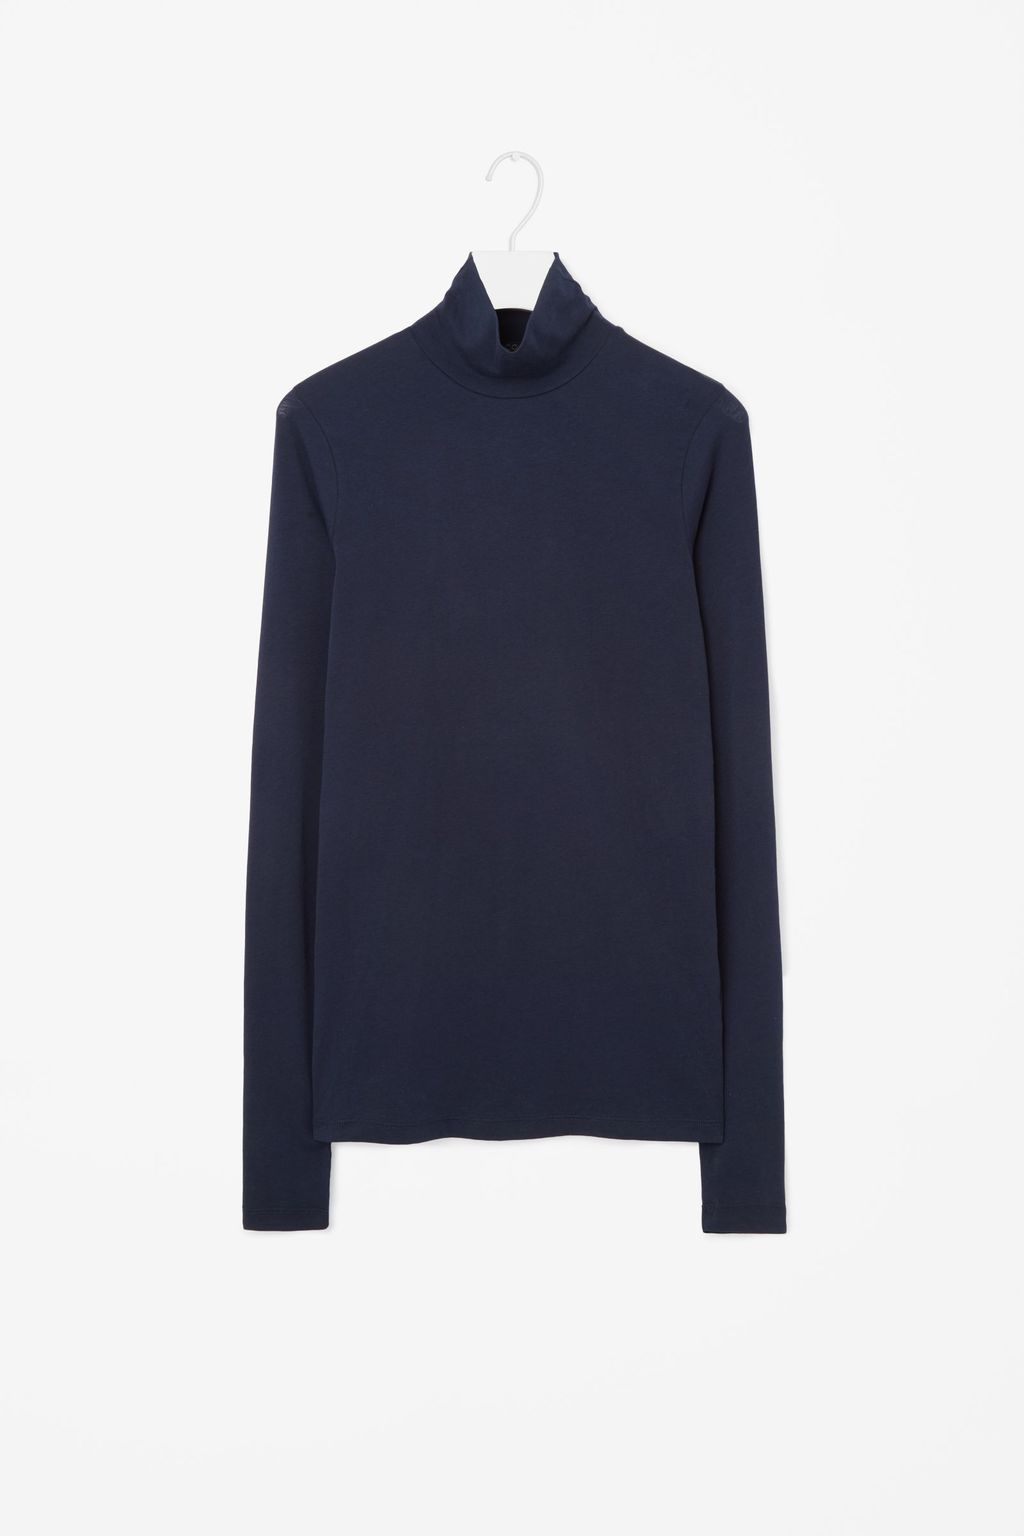 High Neck Jersey Top - pattern: plain; neckline: high neck; predominant colour: navy; occasions: casual; length: standard; style: top; fibres: cotton - 100%; fit: body skimming; sleeve length: long sleeve; sleeve style: standard; pattern type: fabric; texture group: jersey - stretchy/drapey; wardrobe: basic; season: a/w 2016